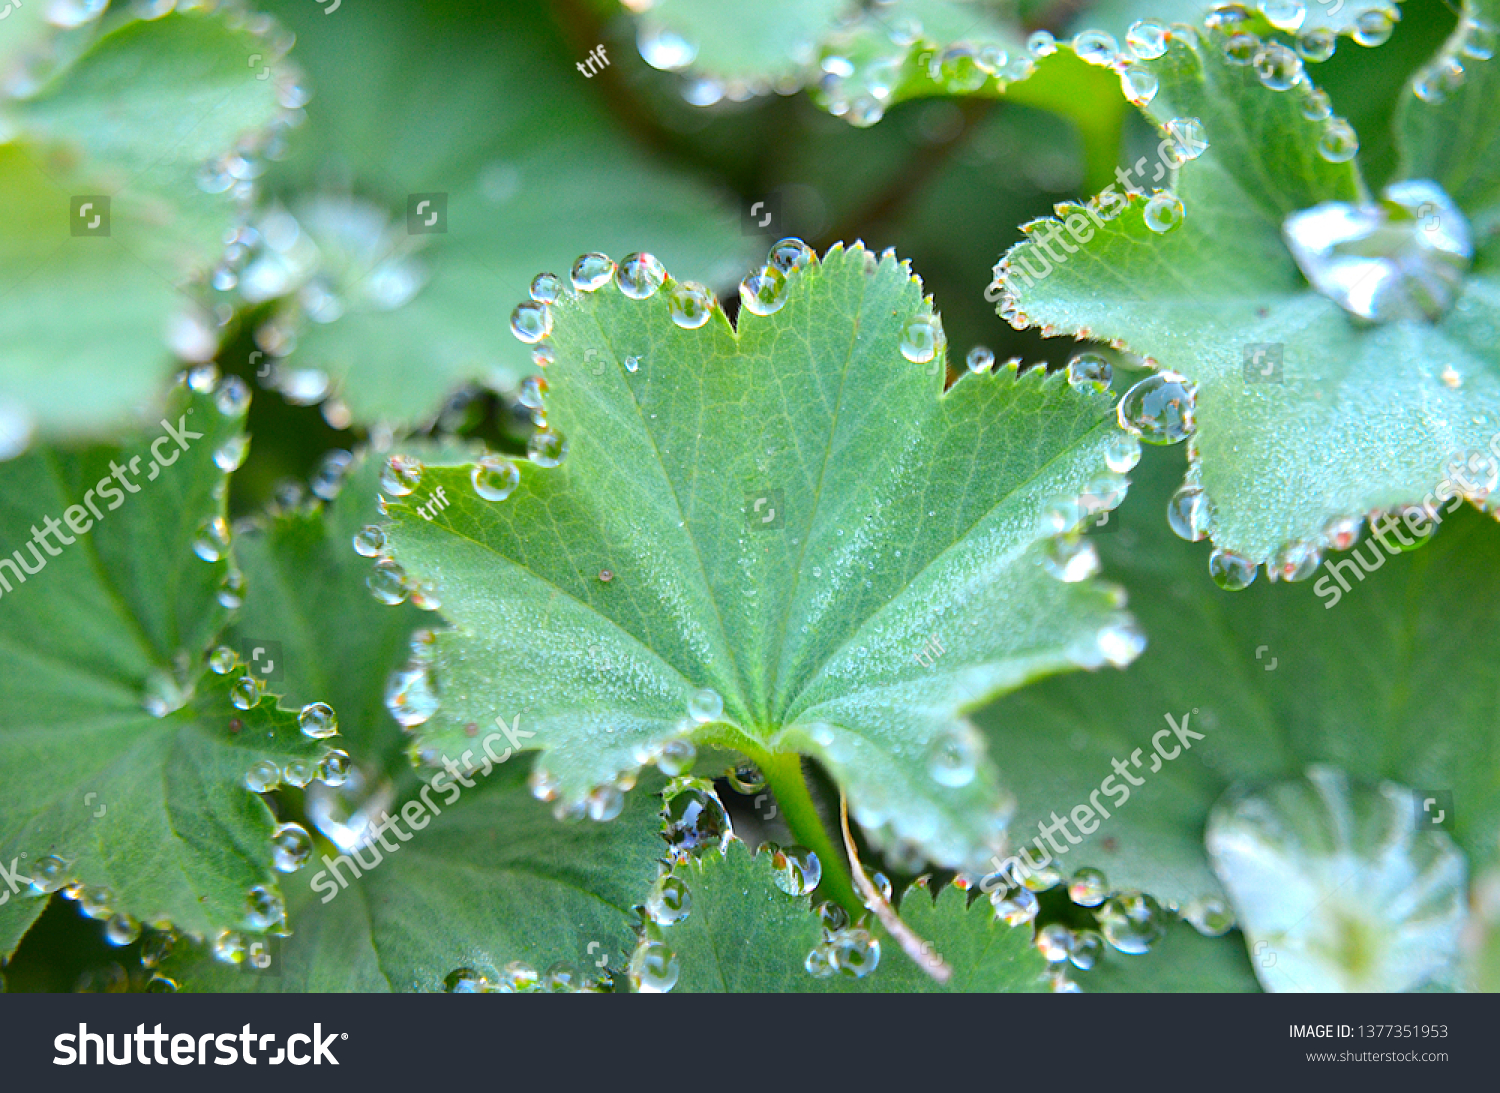 Alchemilla vulgaris (common lady's mantle) leafs with sparkling dew droplets, often used in herbal medicine, especially to cure gynecological problems #1377351953